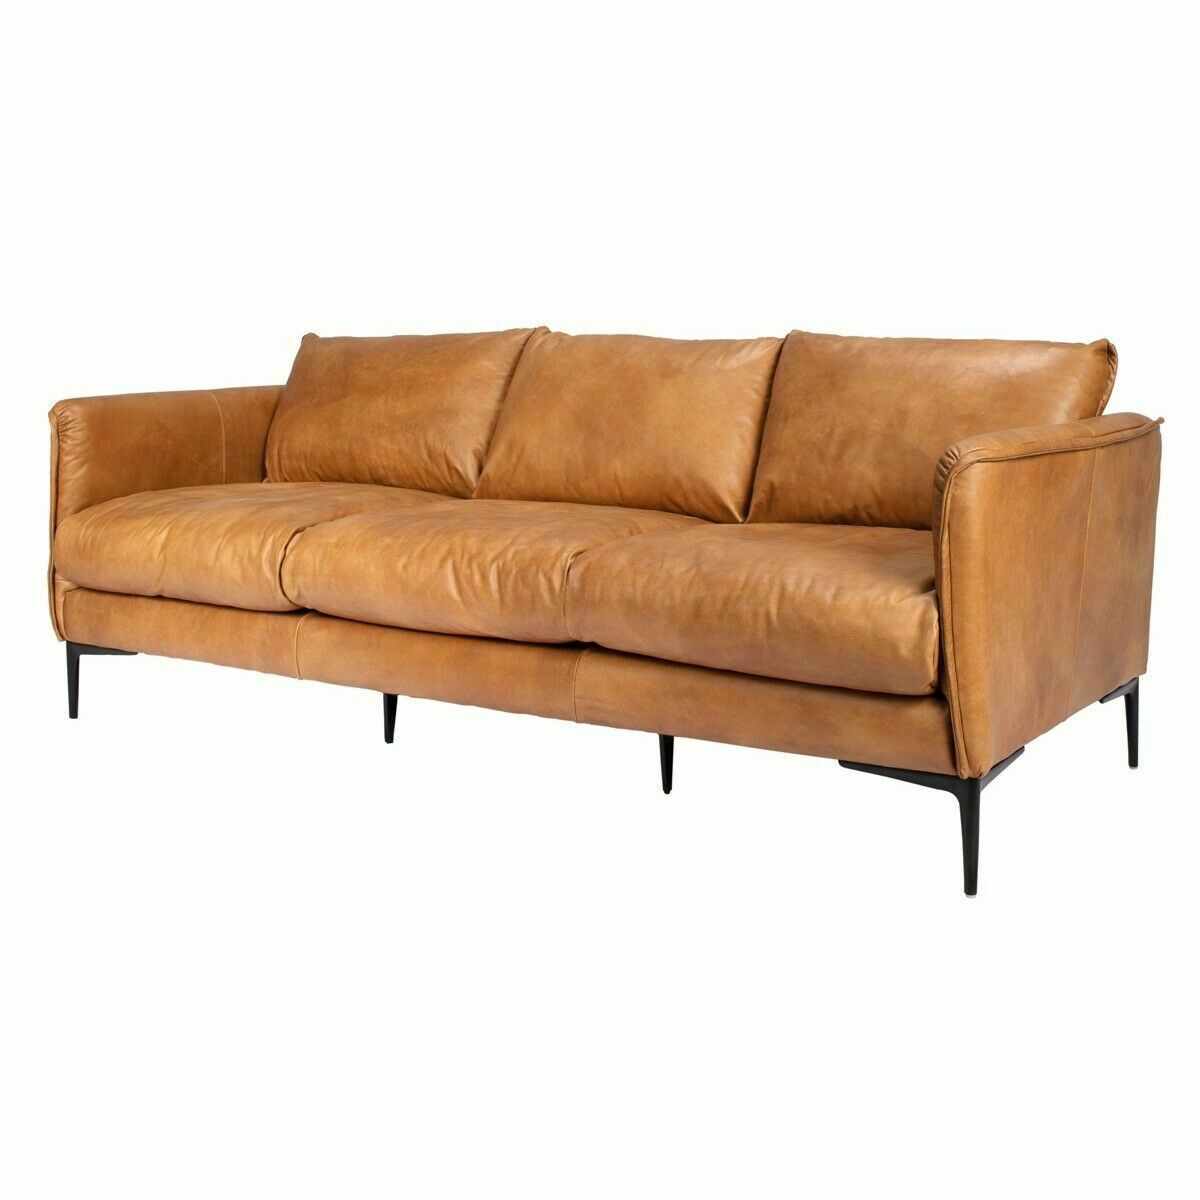 Leather Sofas For Sale In Stock Ebay